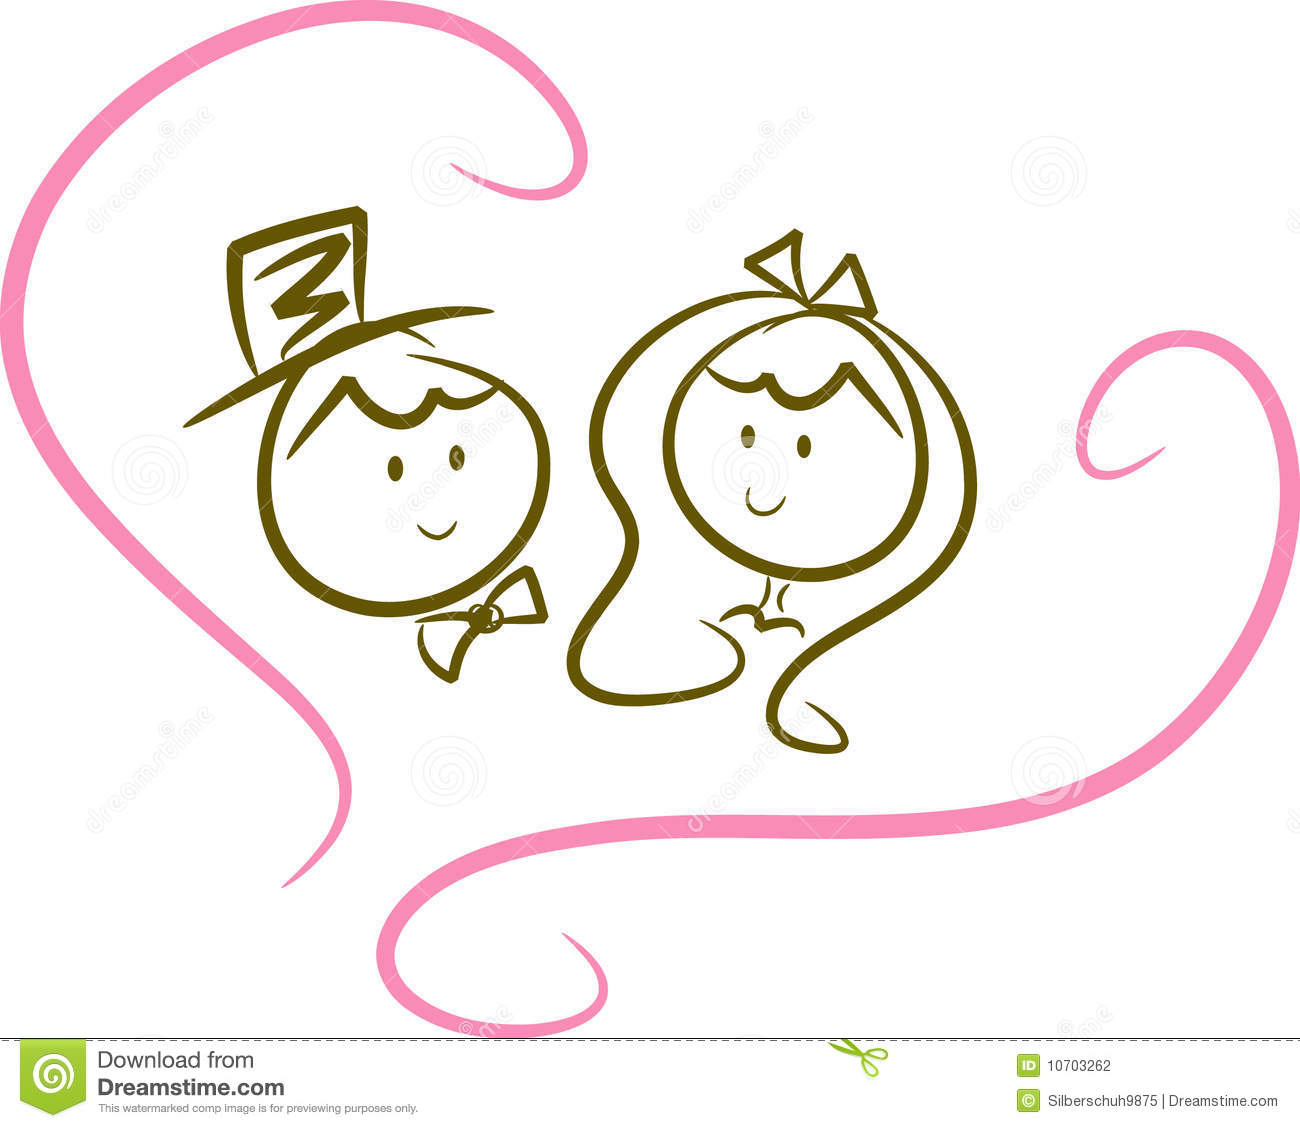 Wedding clipart cute svg royalty free library Cute wedding clipart clipart suggest - Clipartable.com svg royalty free library